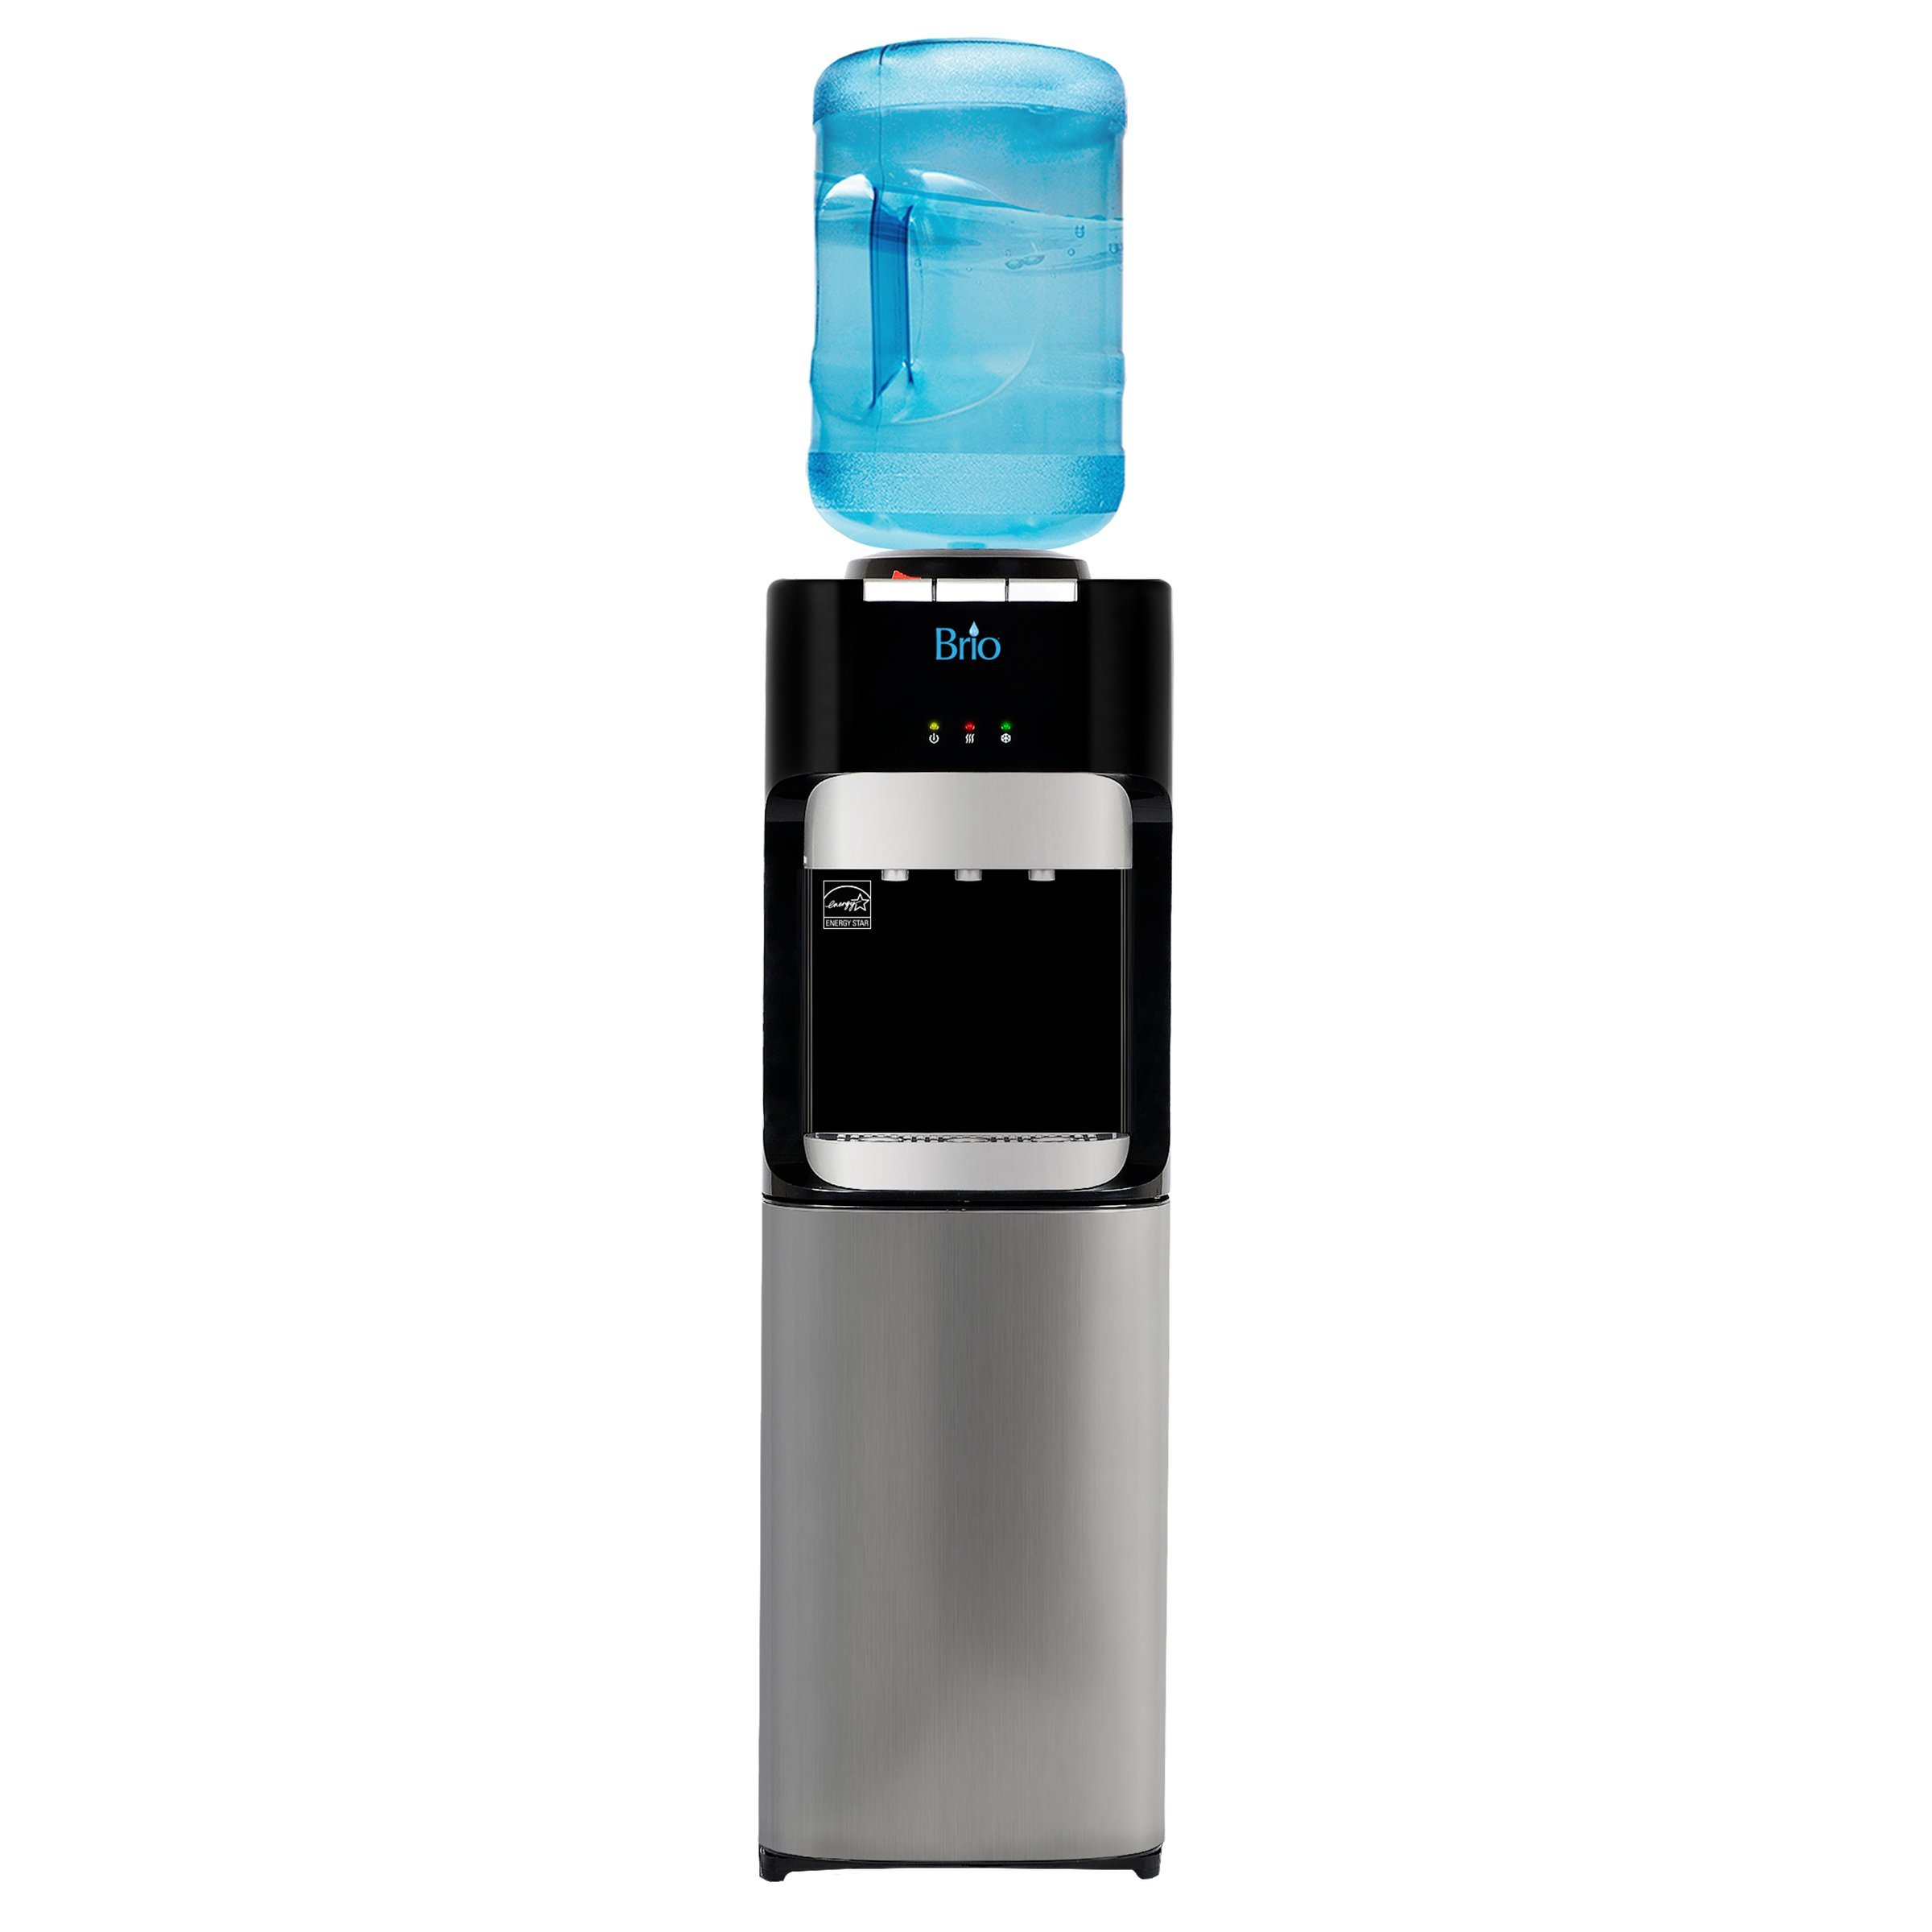 Brio Essential Series Top Load Hot, Cold & Room Water Cooler Dispenser